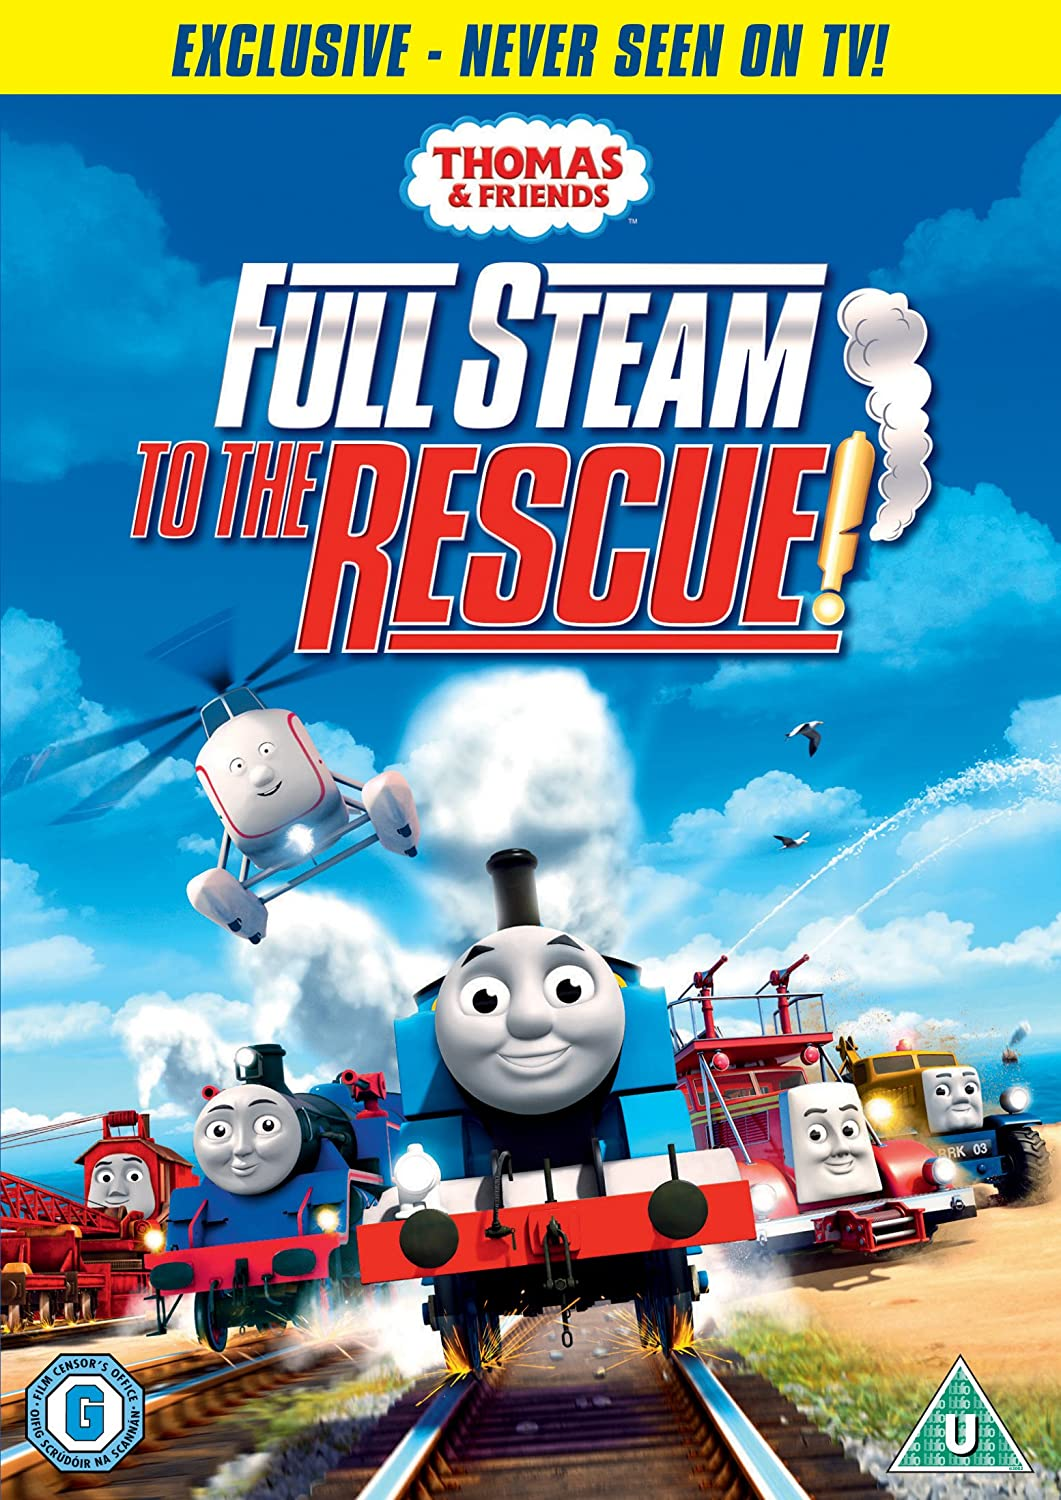 thomas friends full steam to the rescue dvd amazon co uk